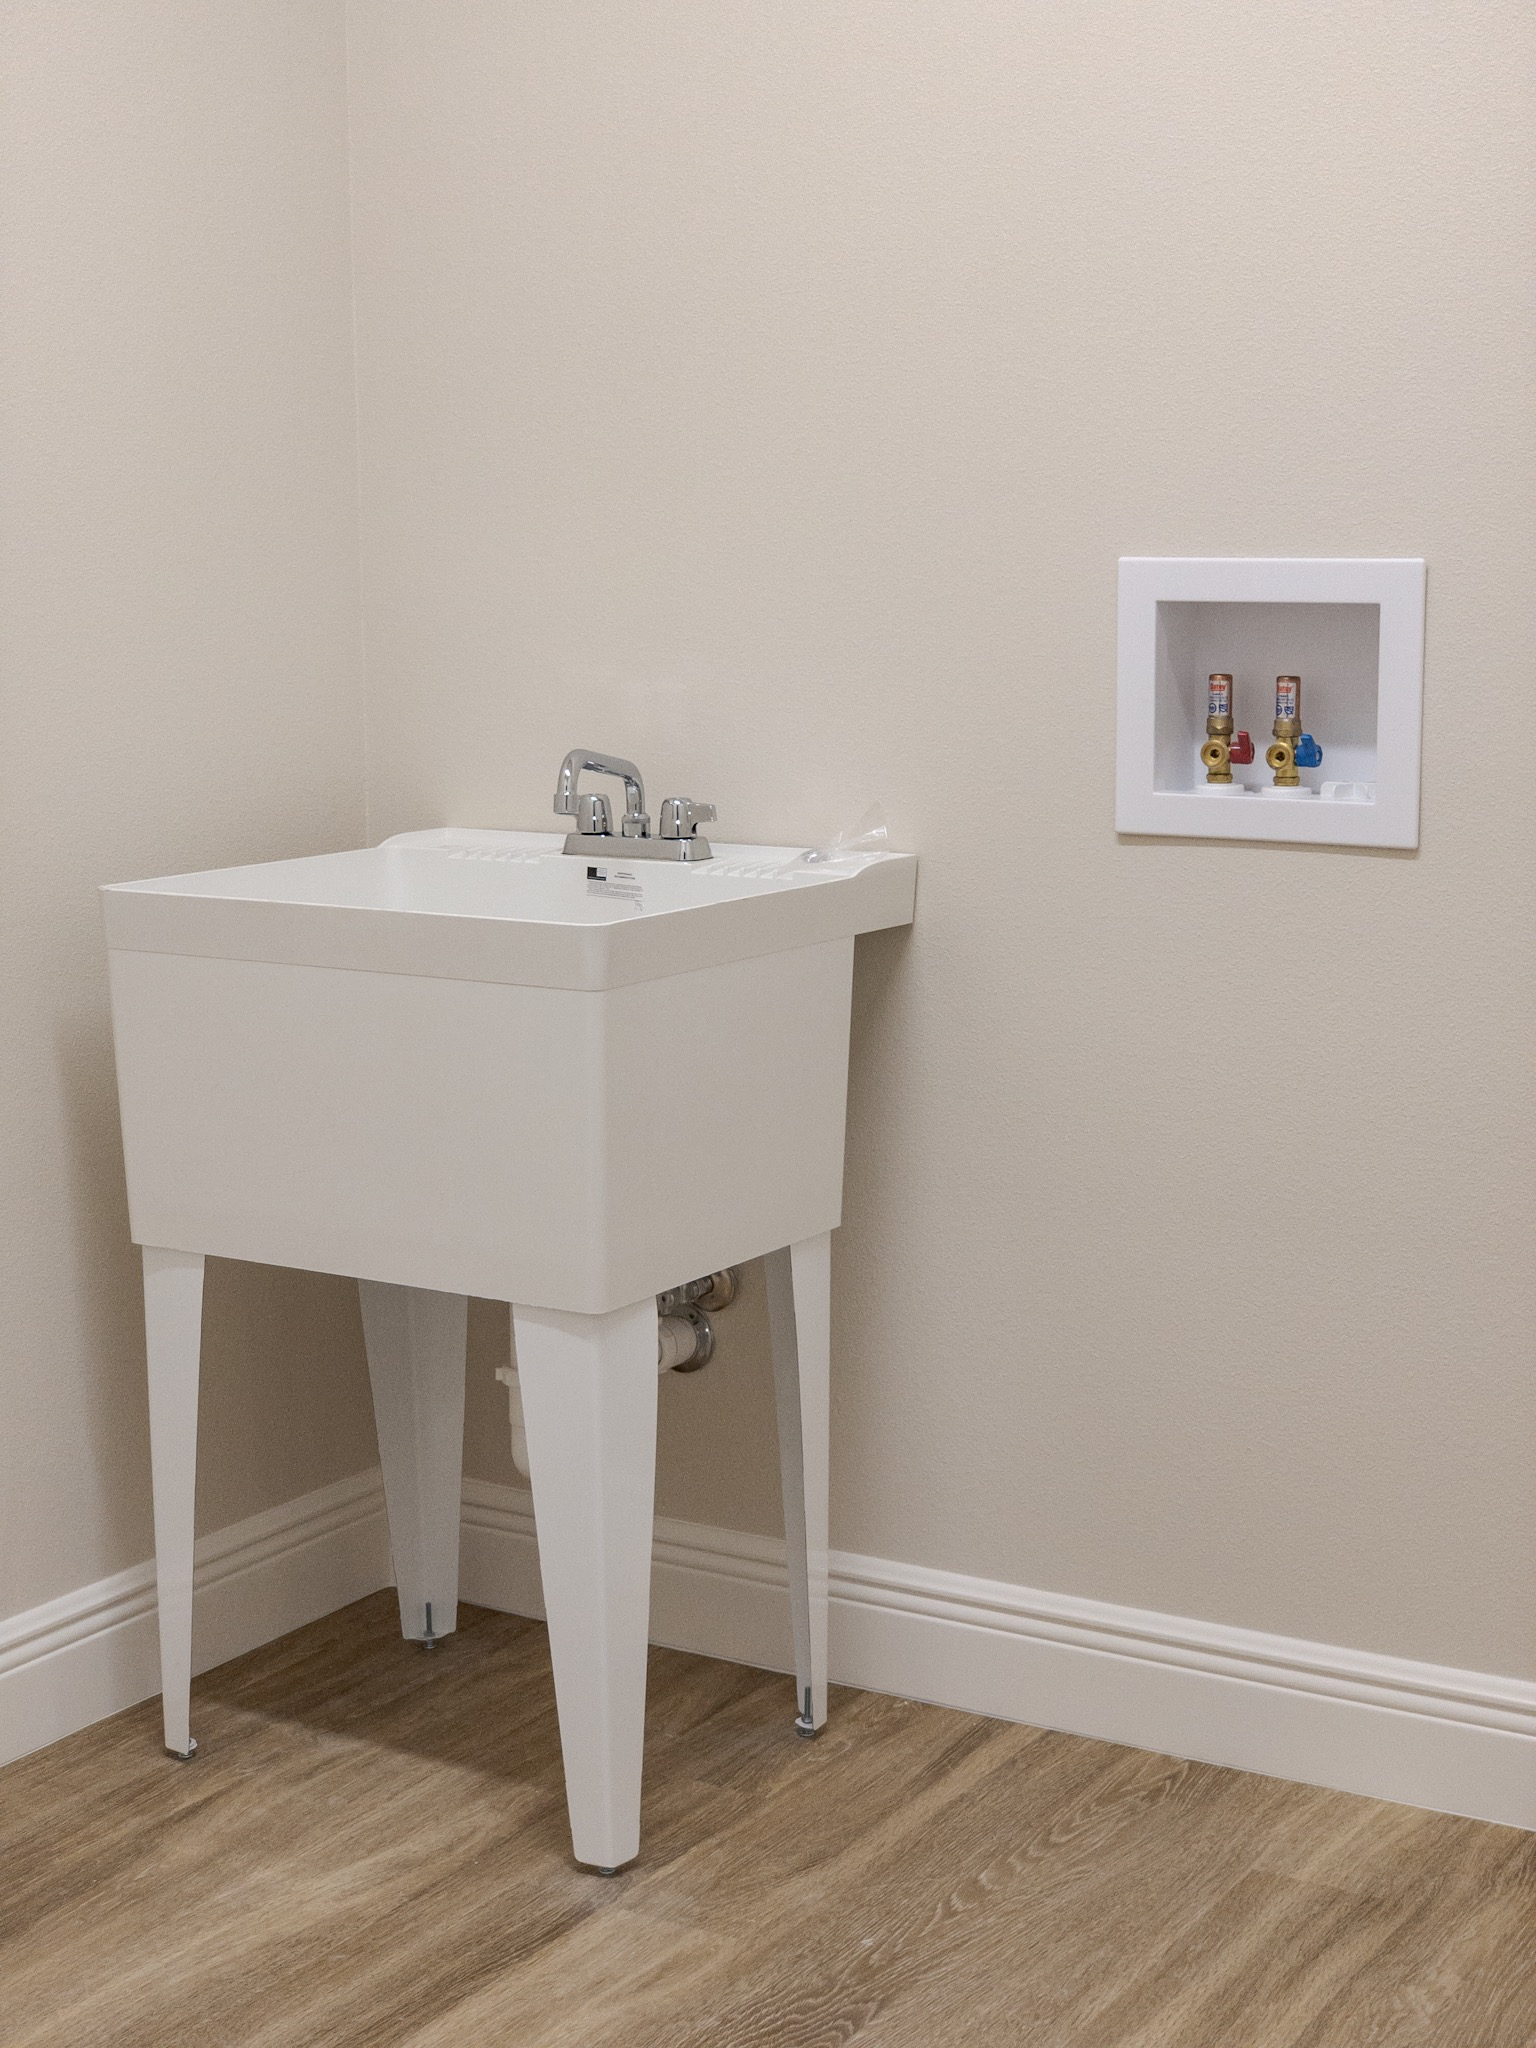 Laundry sink in large laundry room.jpg